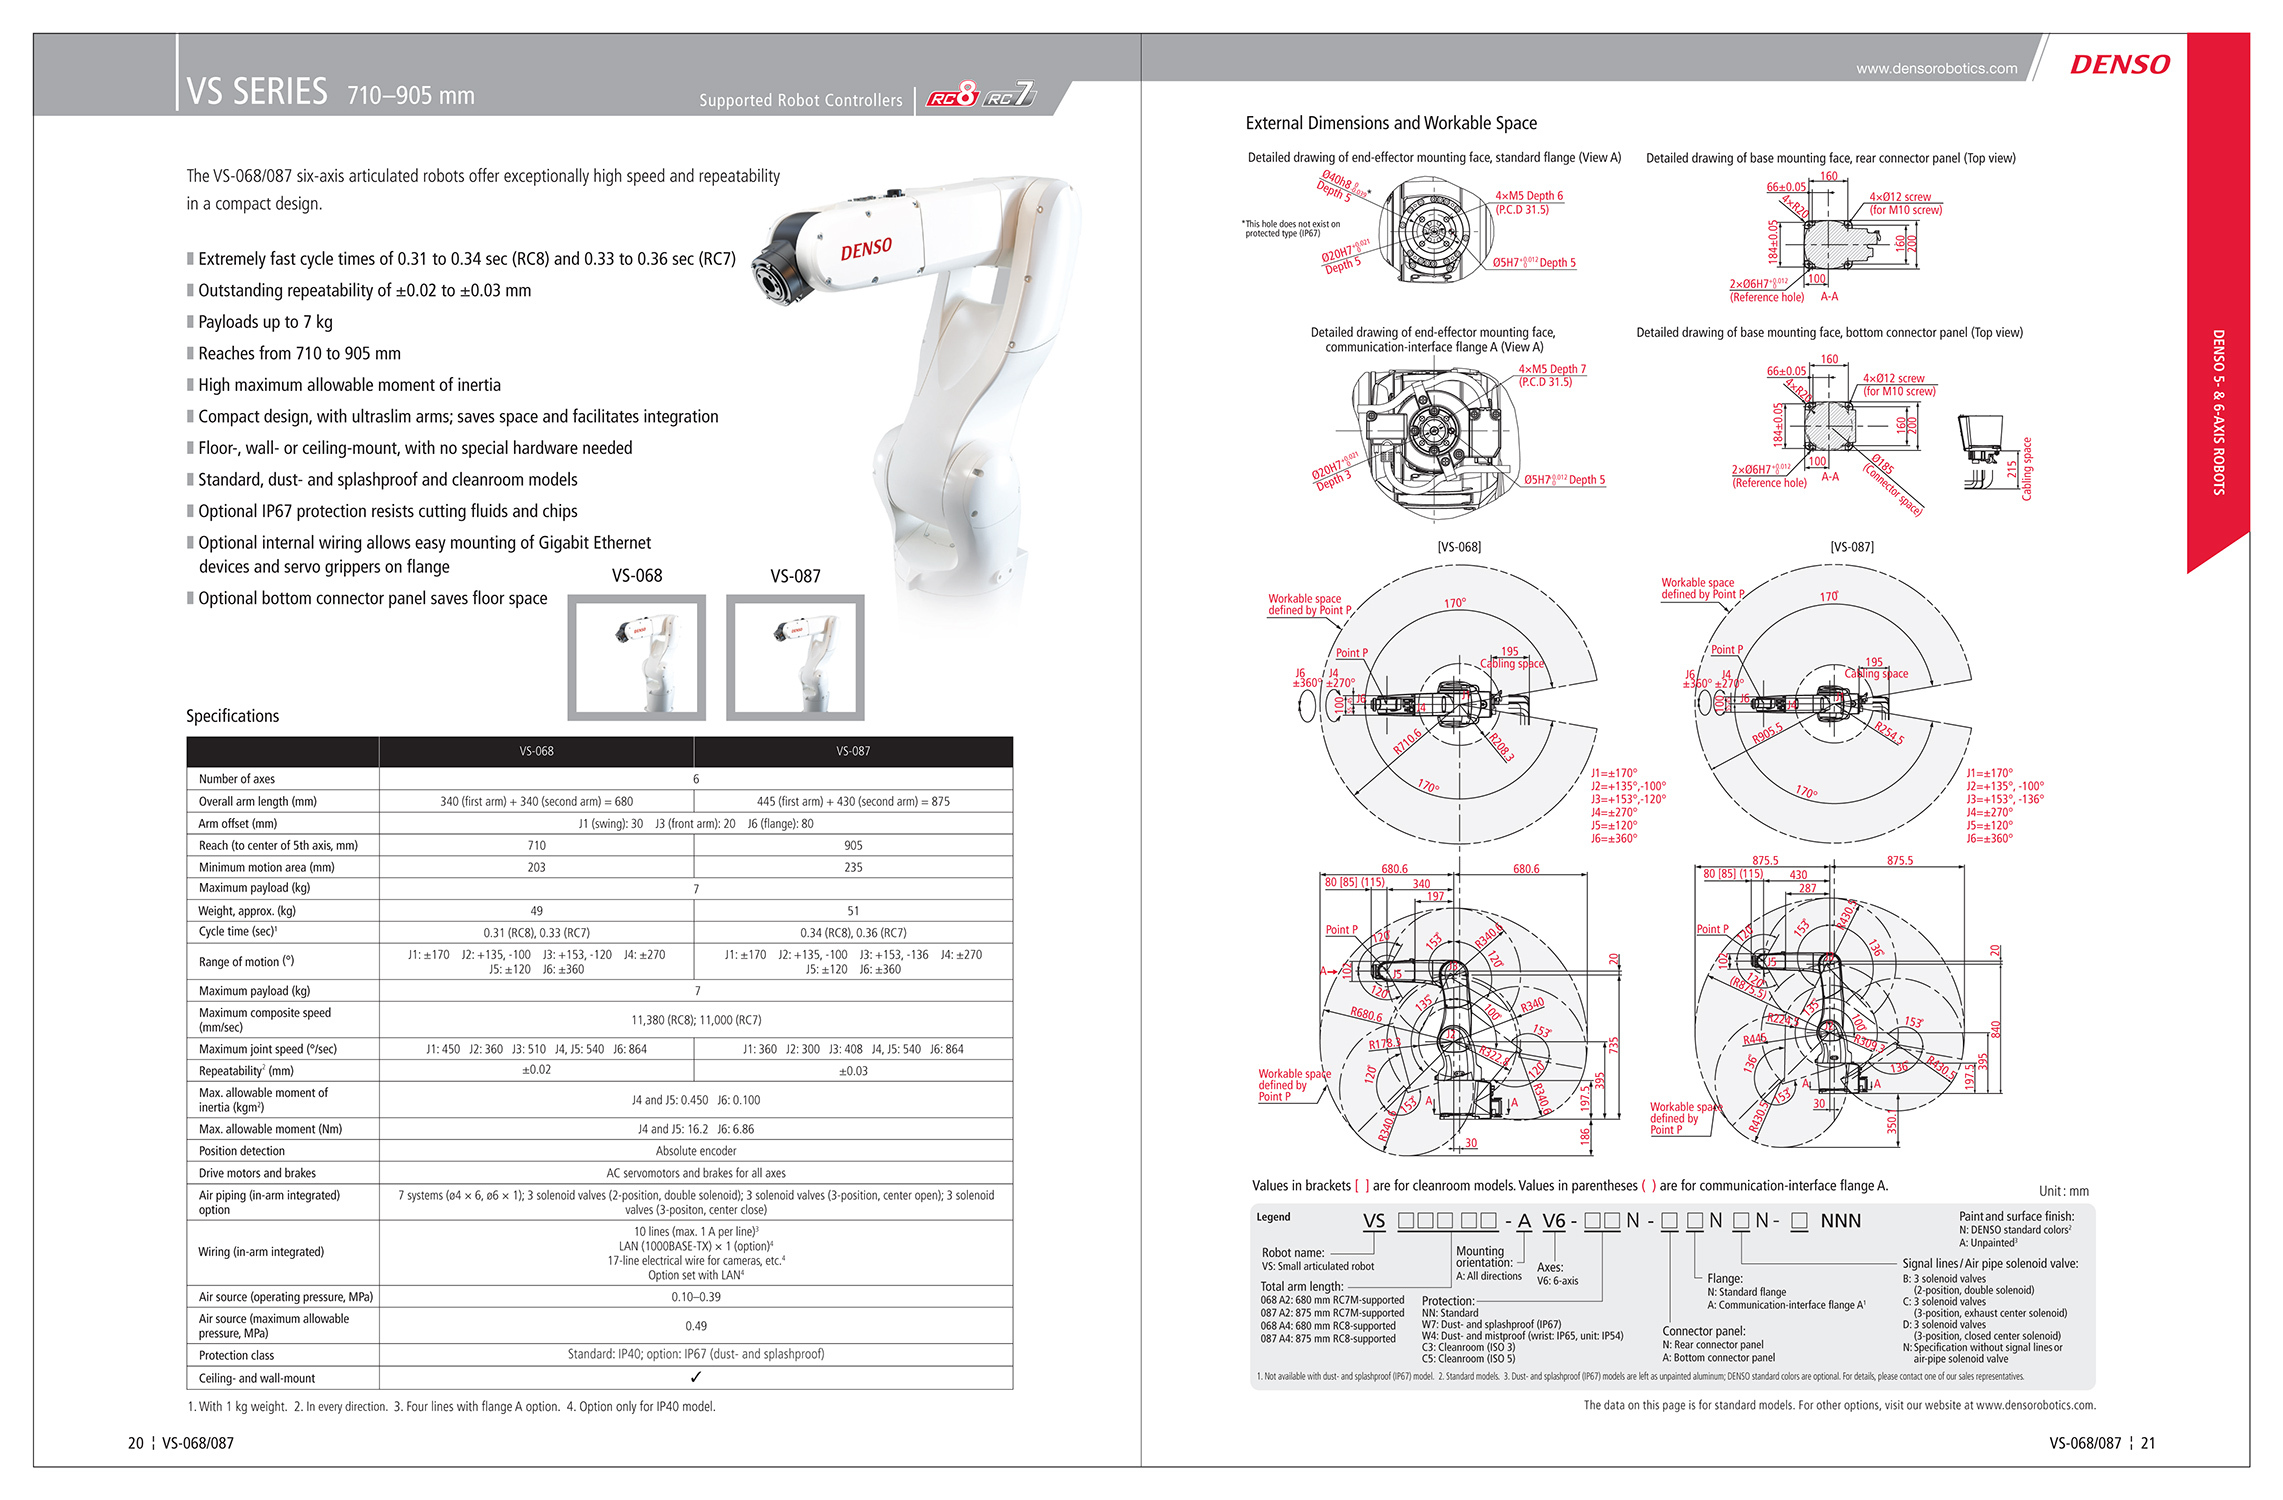 Wiring Diagram Denso Robot Simple Options One Wire Alternator New Robotics Product Catalog Business Solenoid